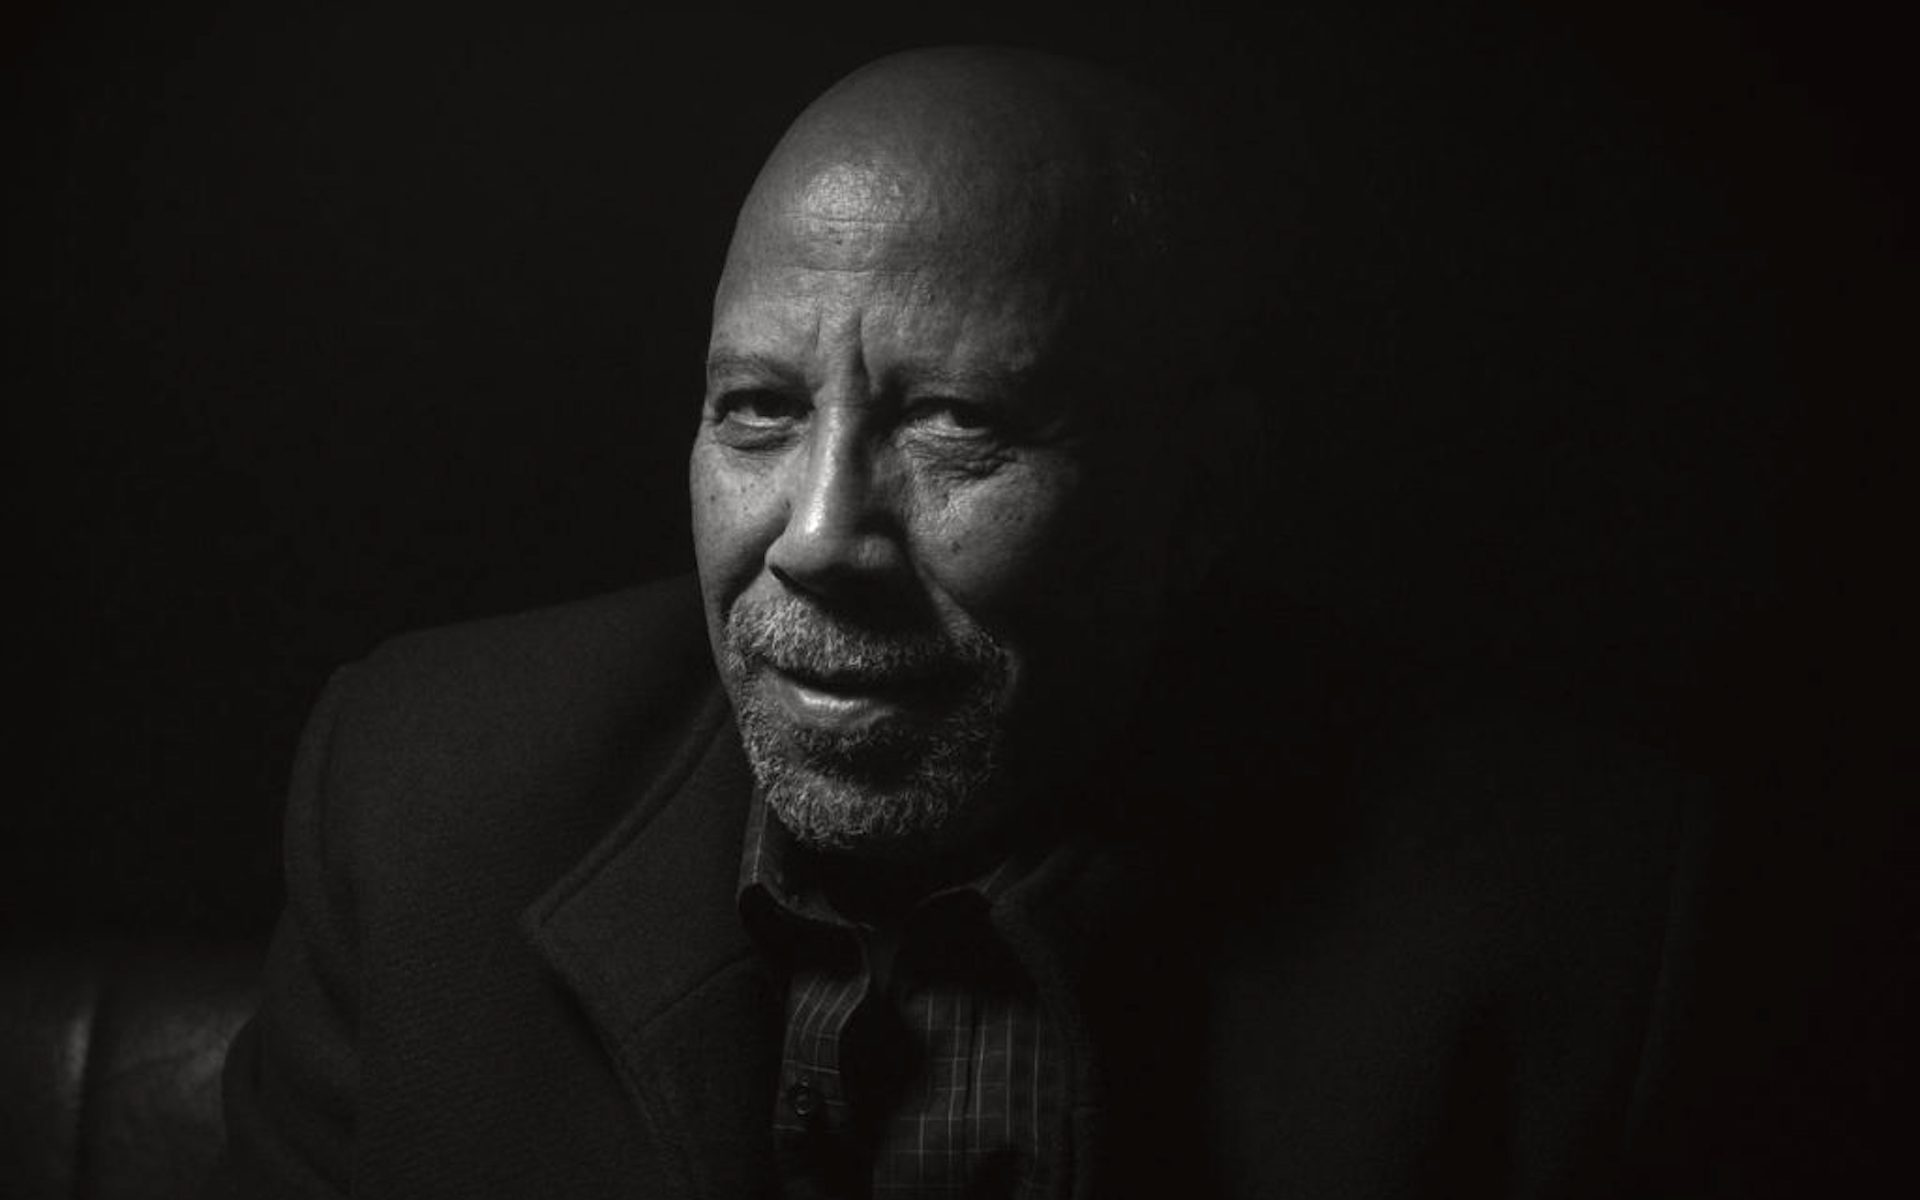 Hailu Mergia on Walias Band, Dahlak Band, and Fleeing Ethiopia